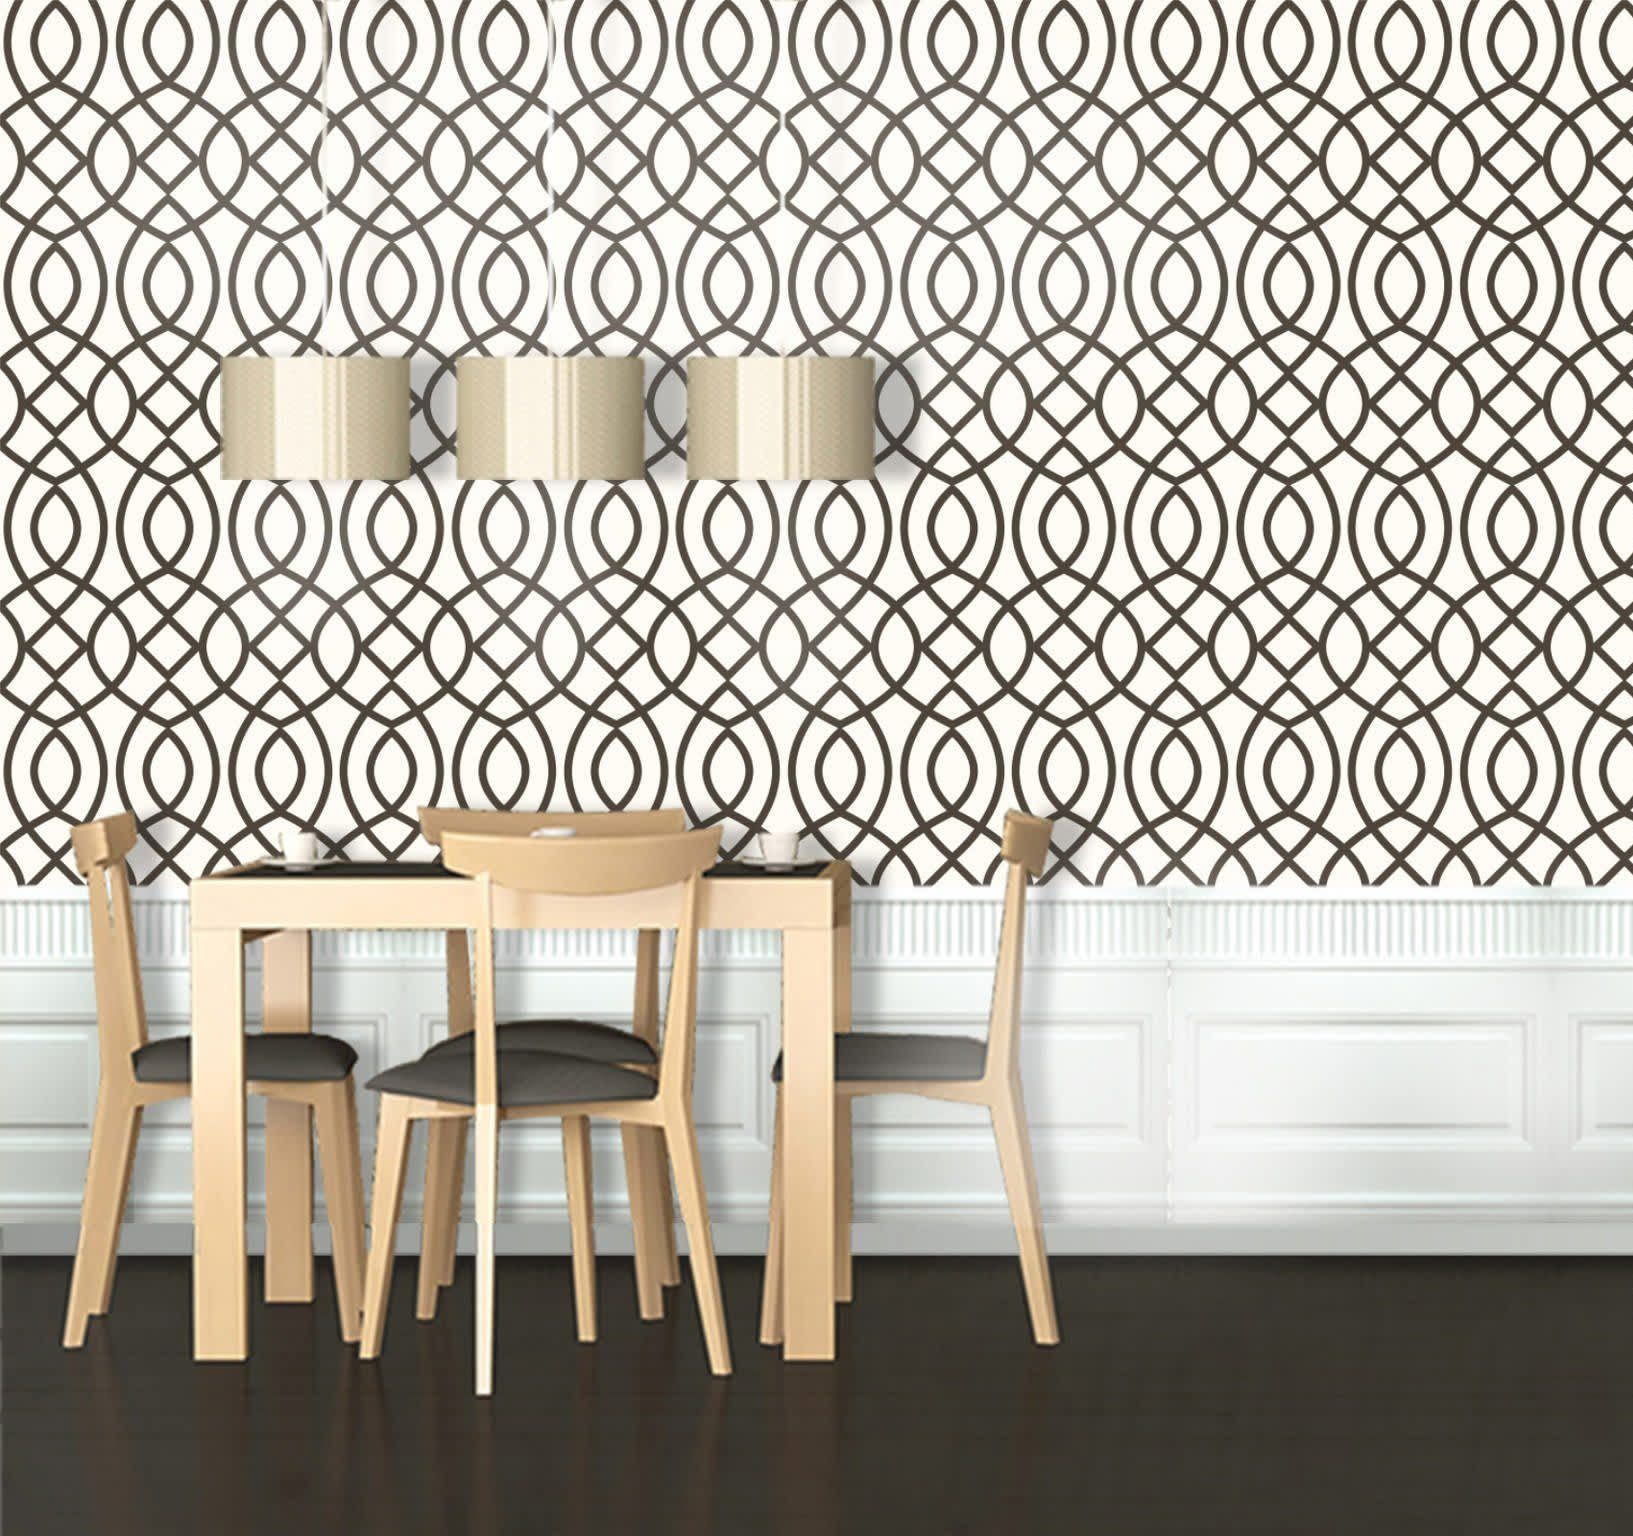 15 Removable Wallpaper Companies To Know Removable Wallpaper Wallpaper Companies Contemporary Wallpaper